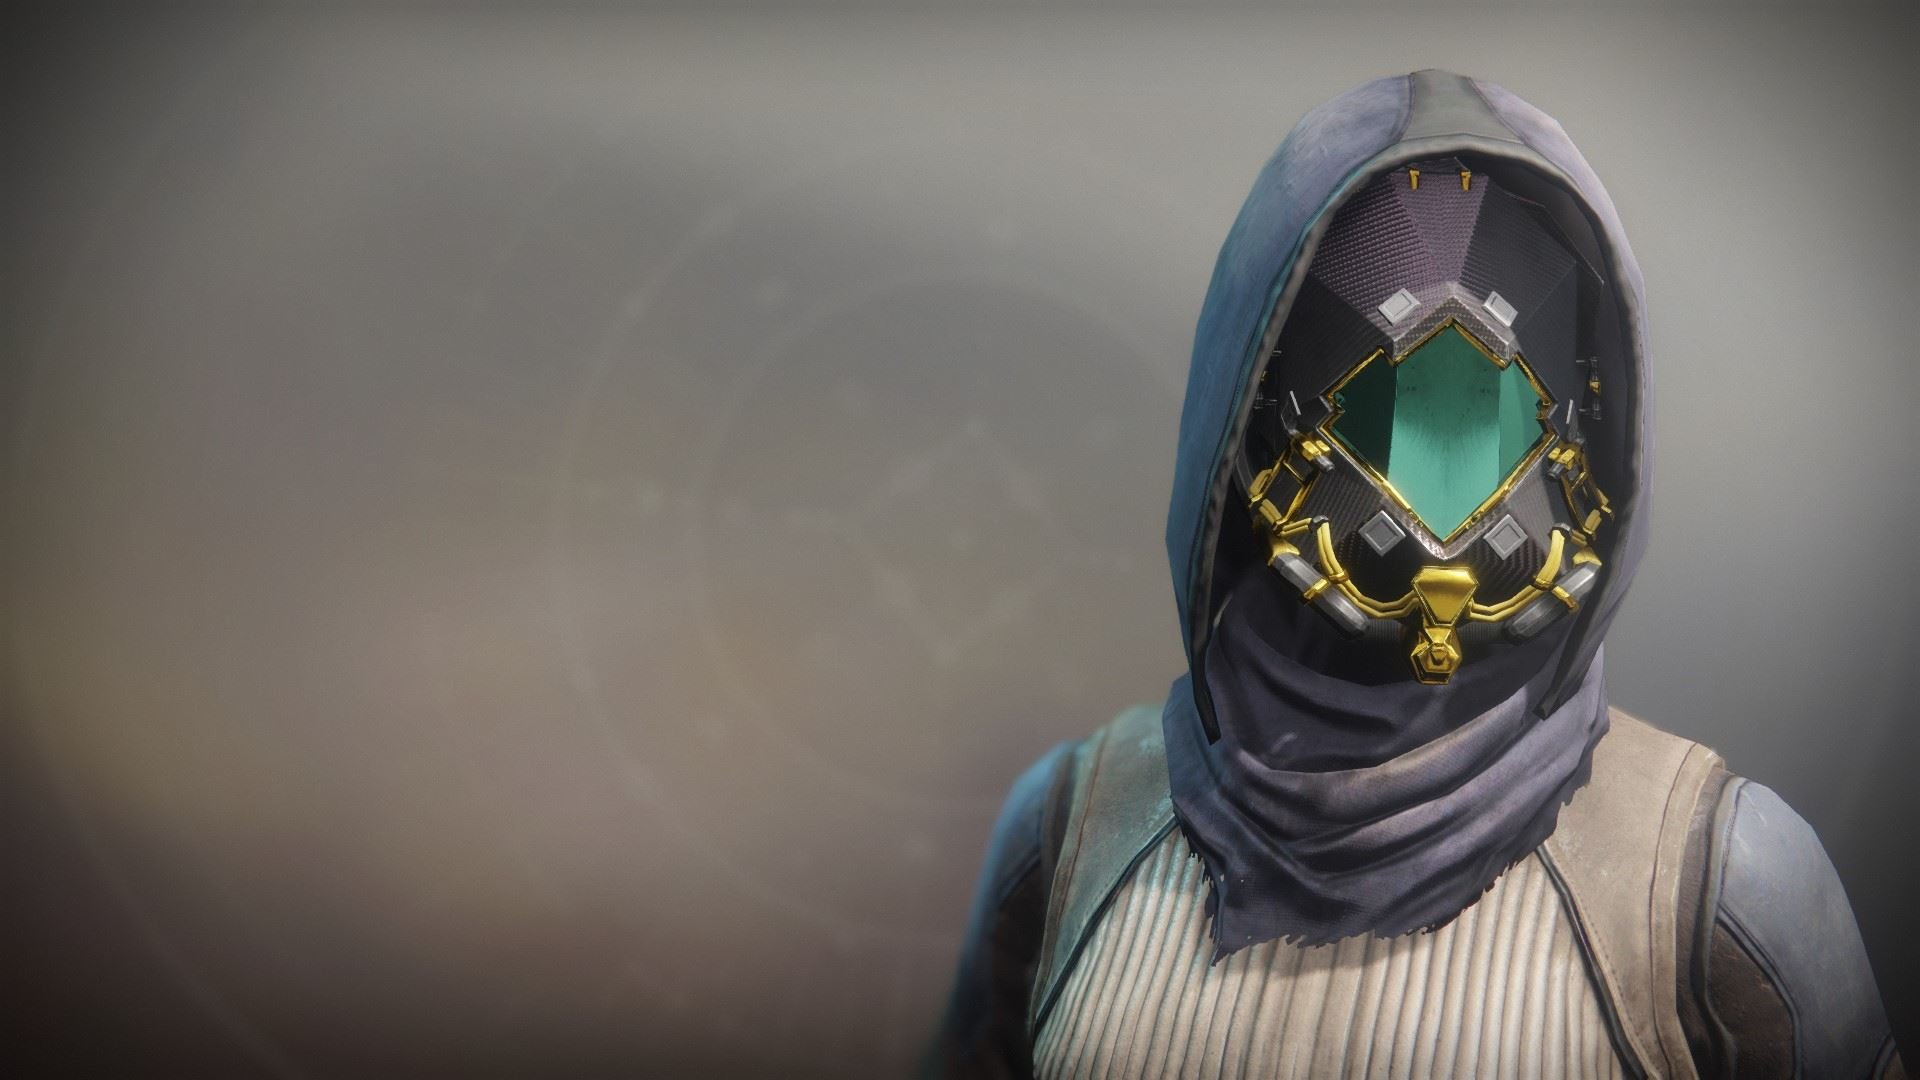 An in-game render of the Abhorrent Imperative Mask.